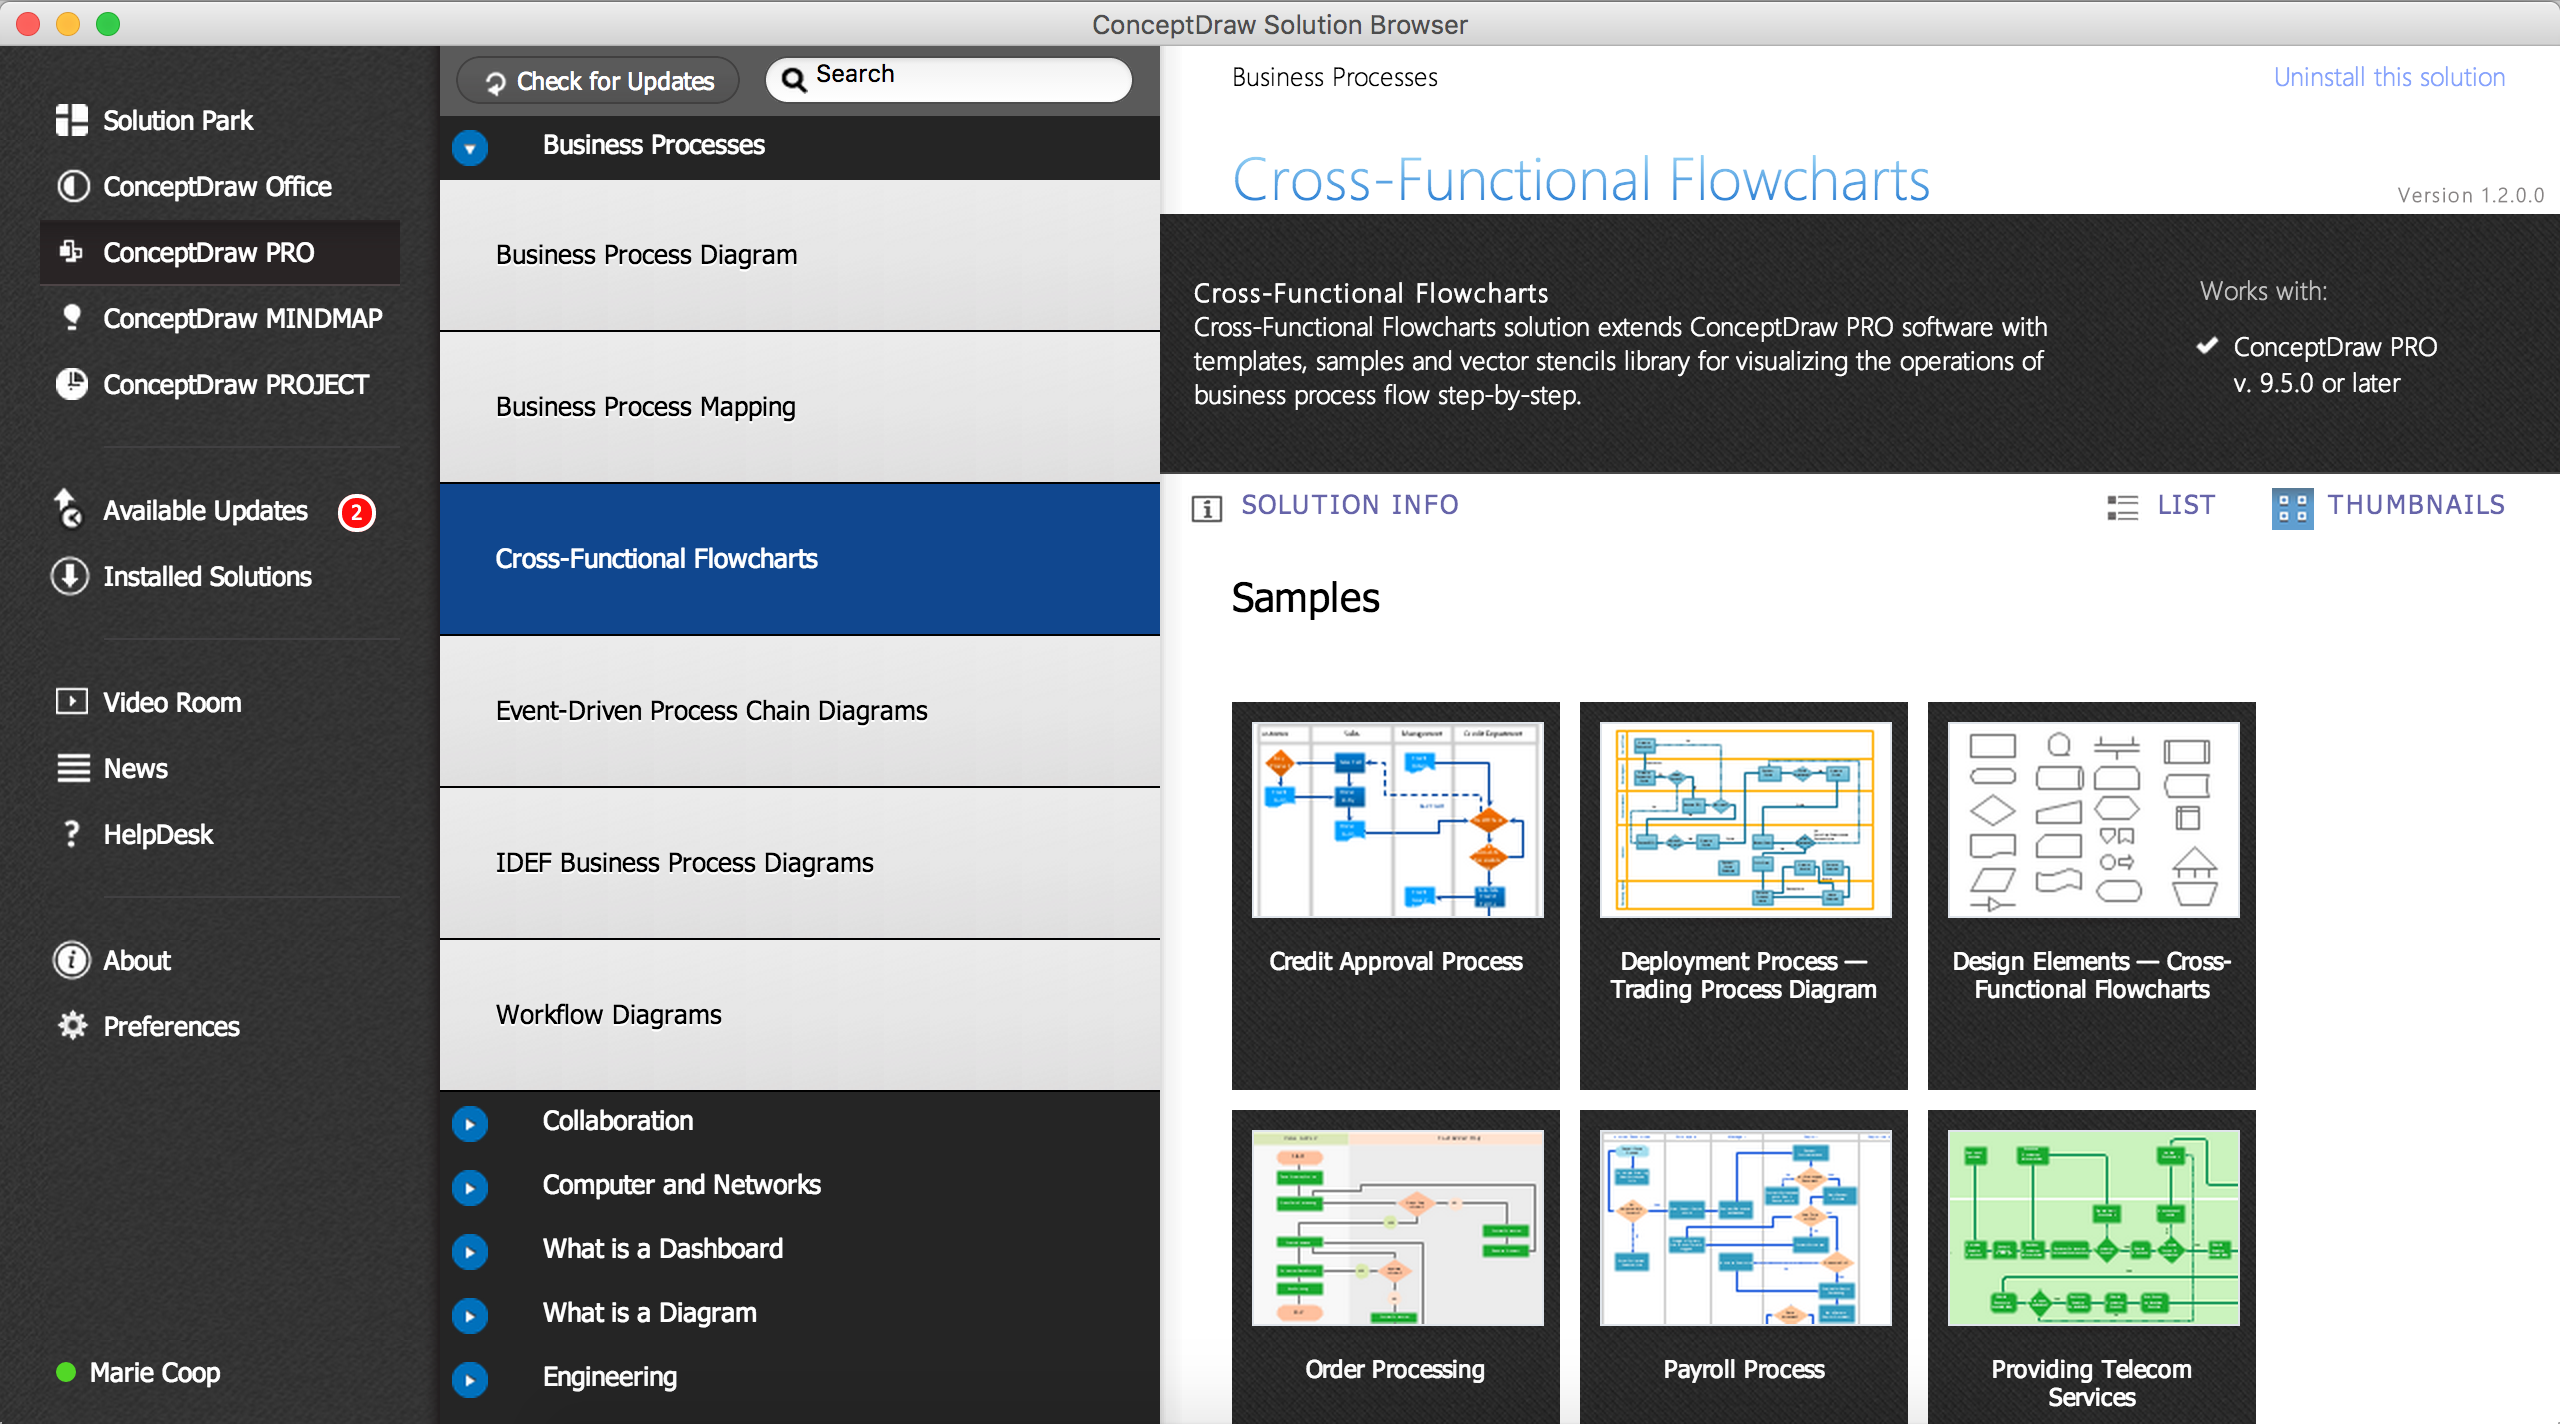 Cross Functional Flowchart Solution with ConceptDraw Solution Browser